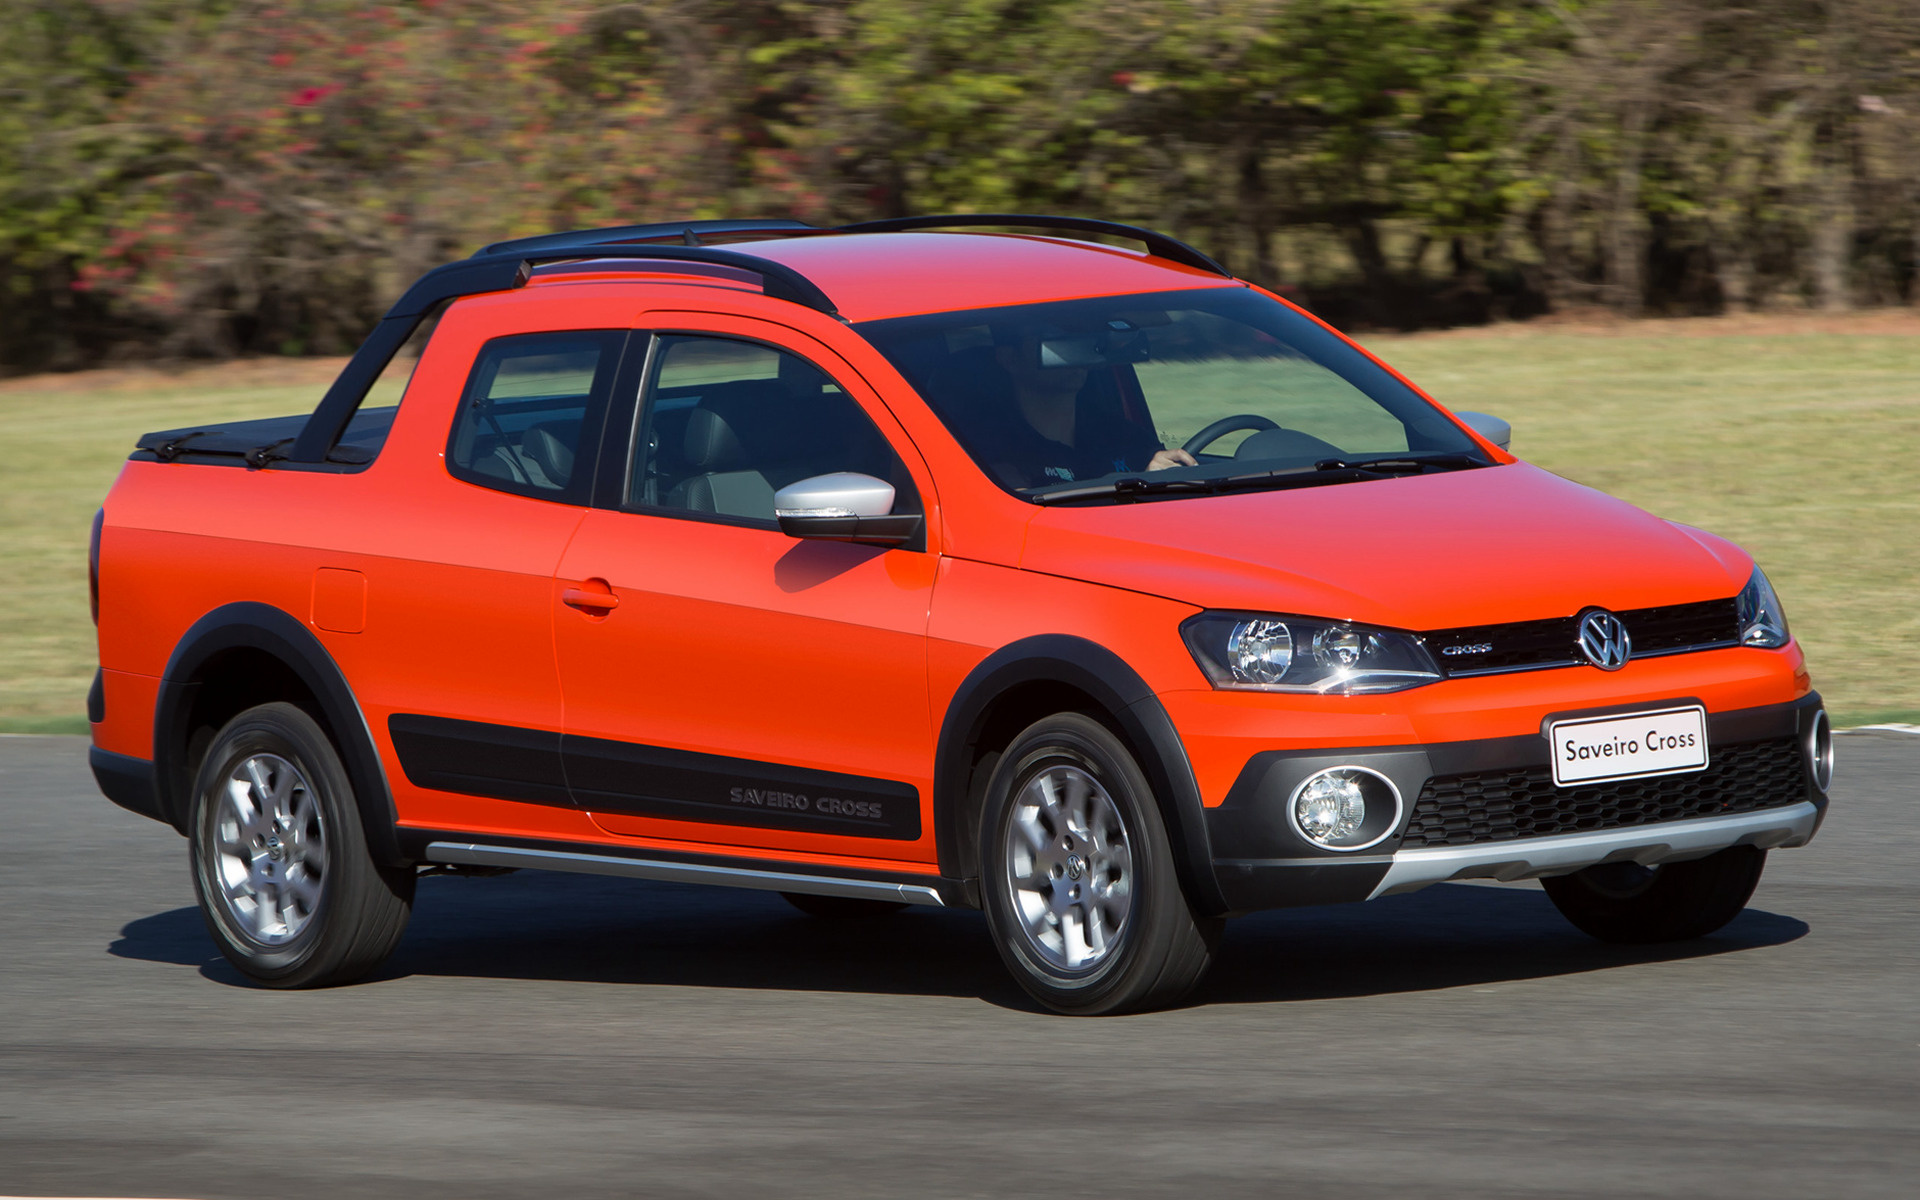 Cross Chrysler Jeep >> 2014 Volkswagen Saveiro Cross CD - Wallpapers and HD Images | Car Pixel